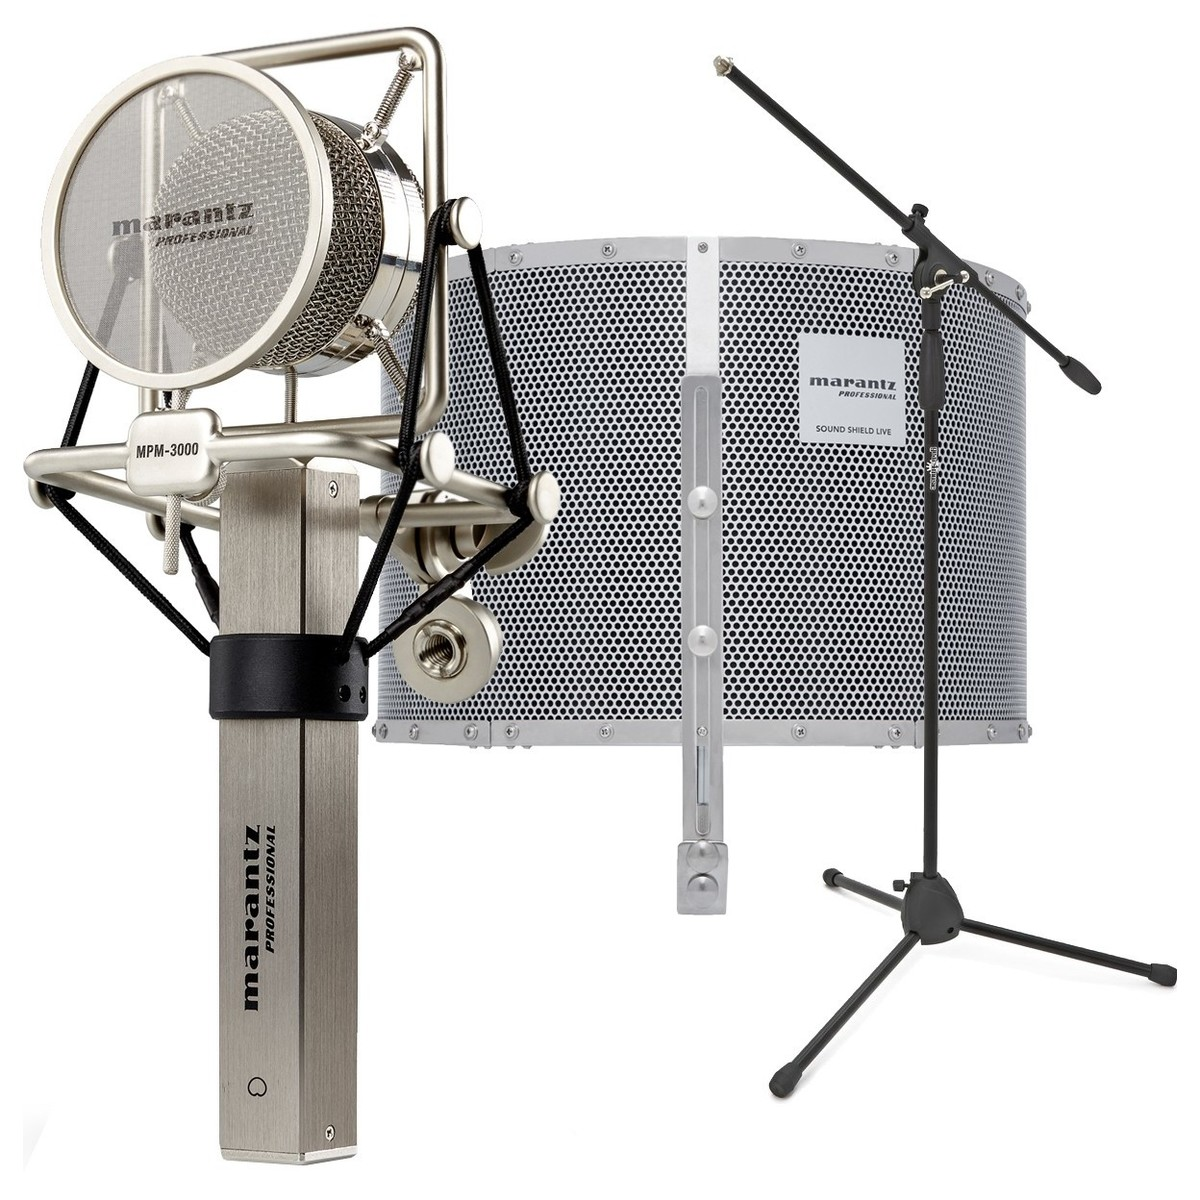 marantz mpm 3000 condenser microphone with reflection filter stand at gear4music. Black Bedroom Furniture Sets. Home Design Ideas